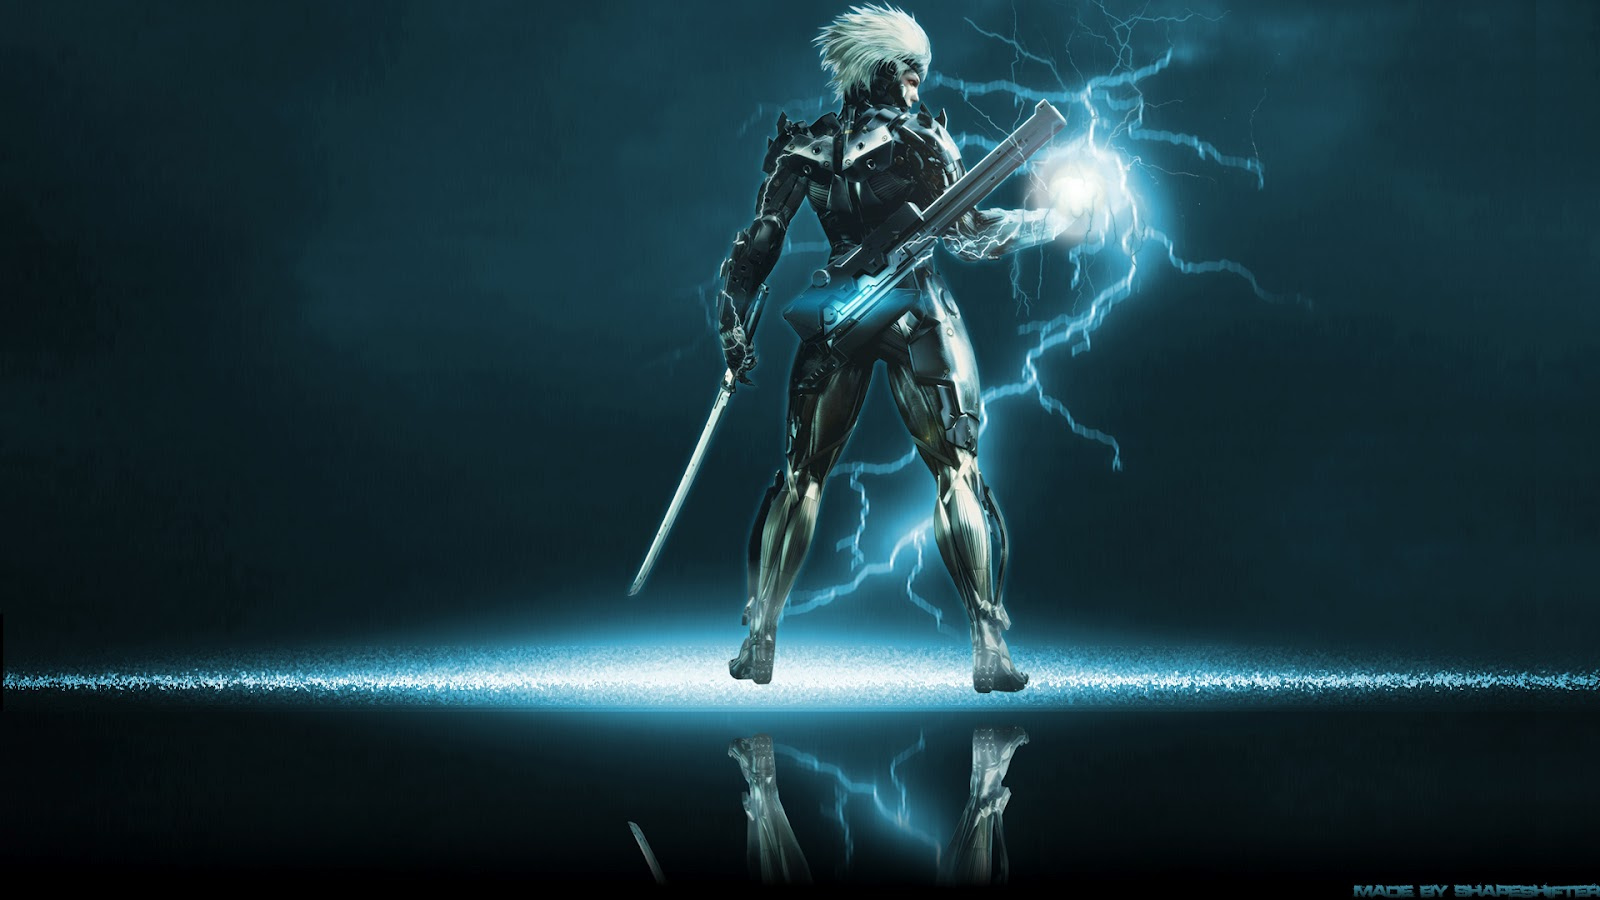 Video game gallery wallpaper avatars more metal gear solid rising raiden wallpaper background konami action third person shooter stealth img image picture pic voltagebd